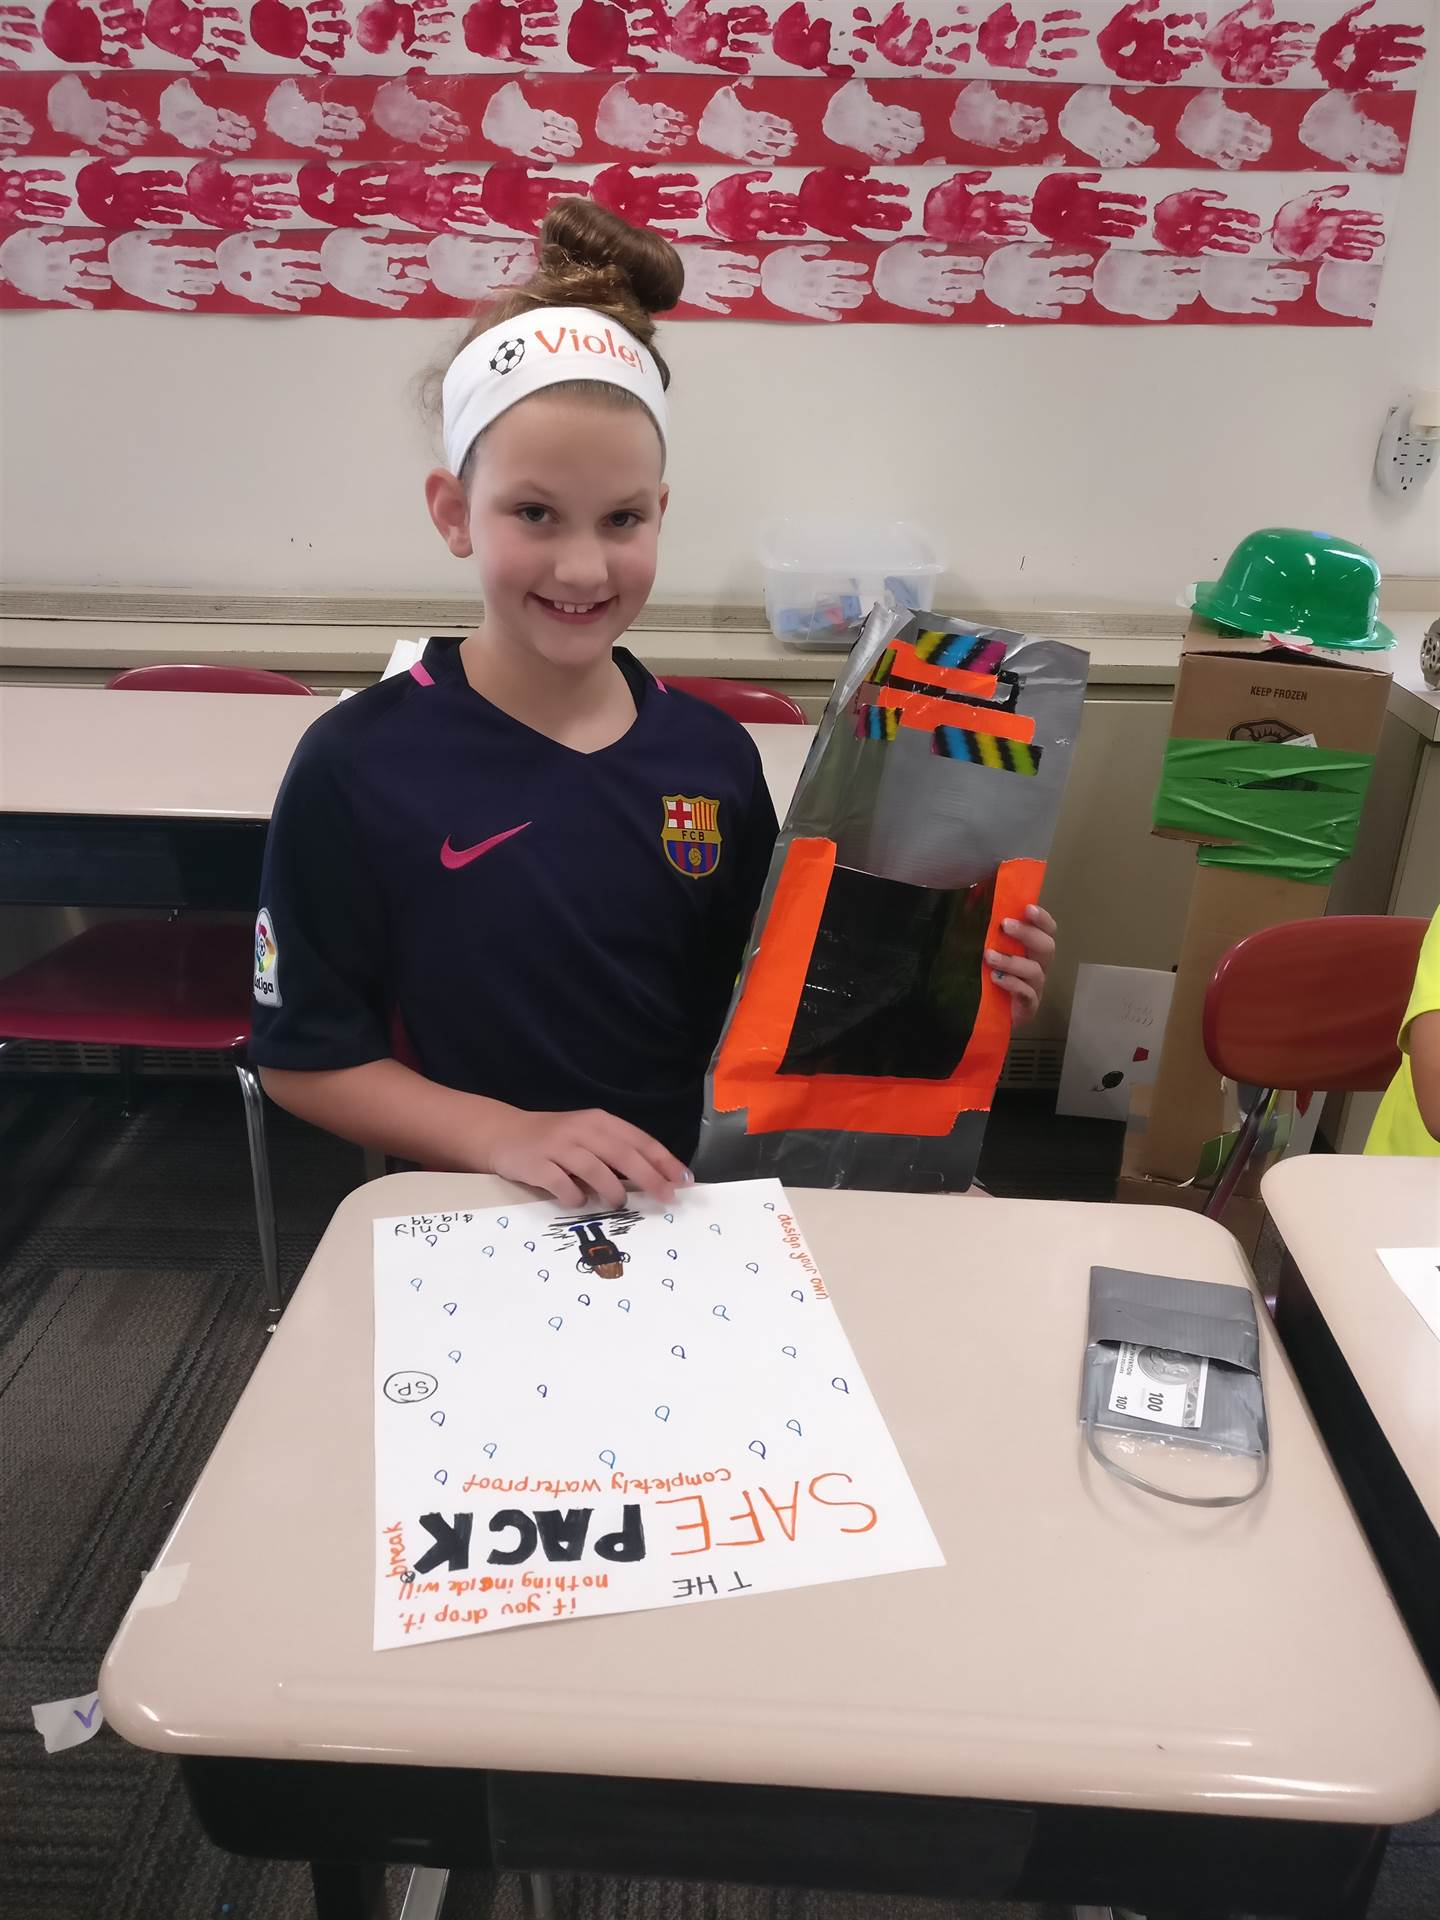 Students are able to develop 21st Century Skills through Camp Invention hands-on activities.